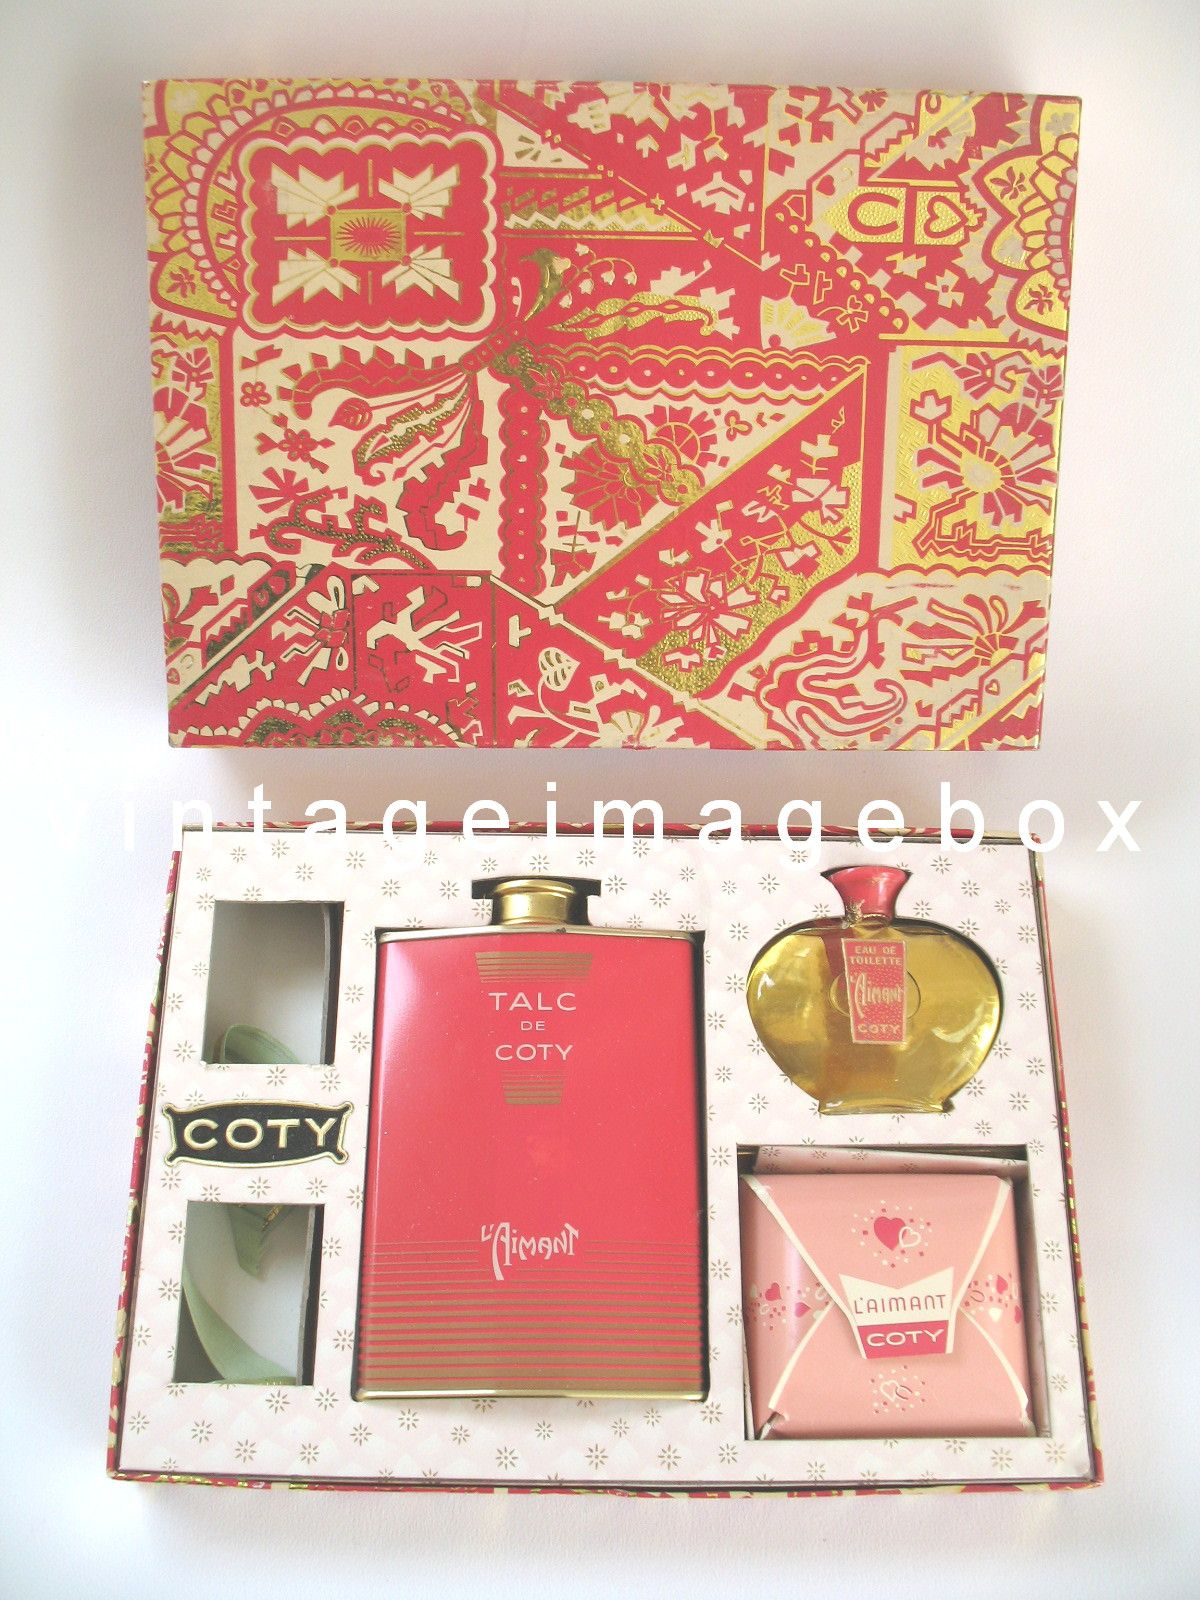 Vintage L'Aimant set by Coty. Mini perfume, talc and soap set. From VintageImageBox